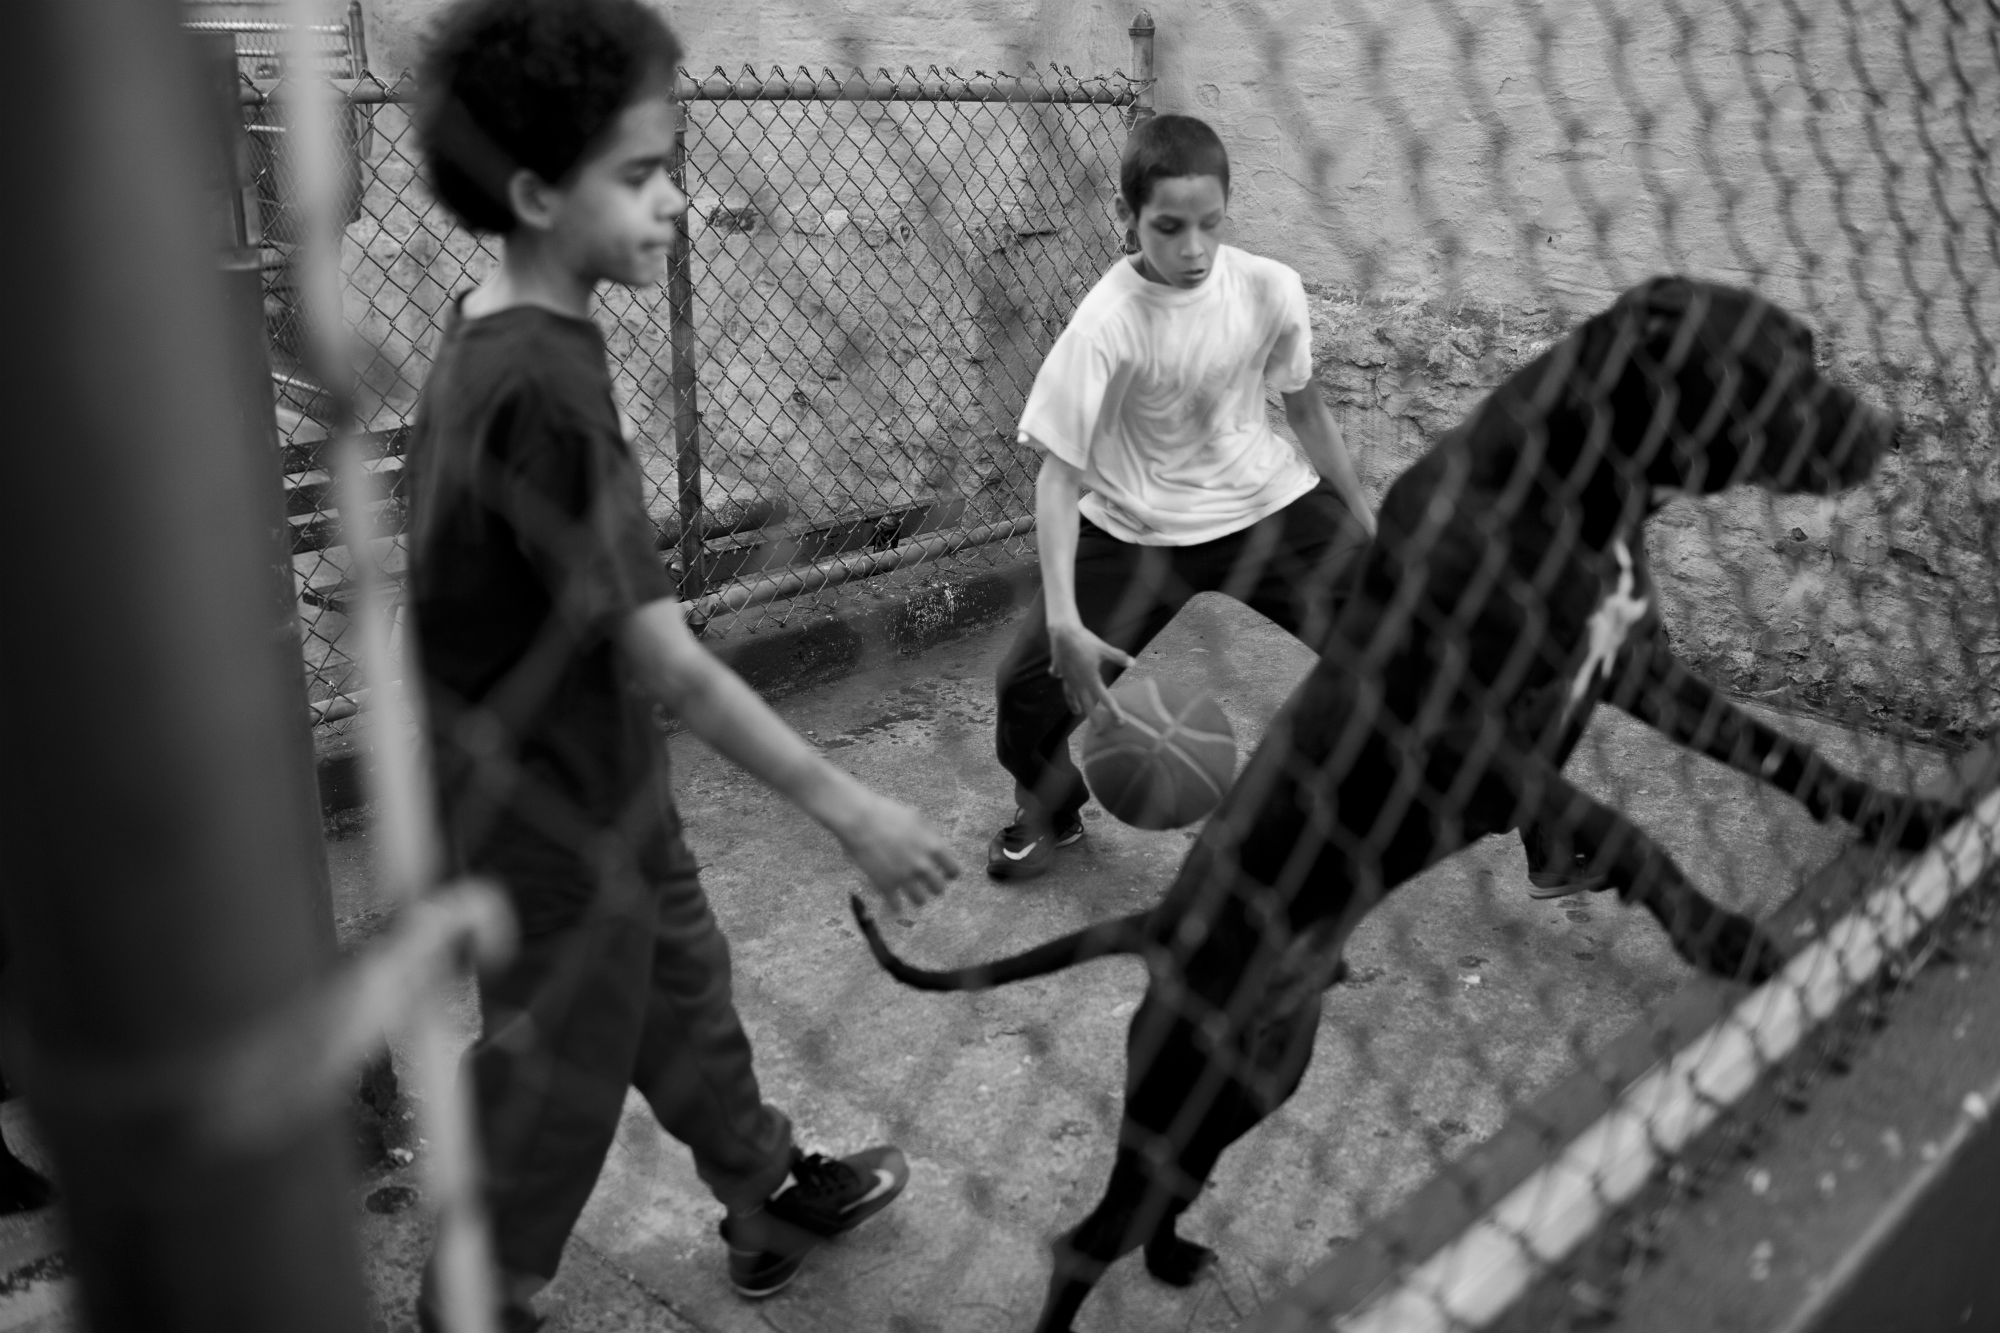 A dog jumps at passersby on the road to St. Mary's Park, April 14, 2016, Mott Haven, Bronx. St. Mary's is a recreational center, and hosts weekly events for the Mott Haven community. (Photo by Sarah Blesener/GroundTruth/Alexia Foundation)